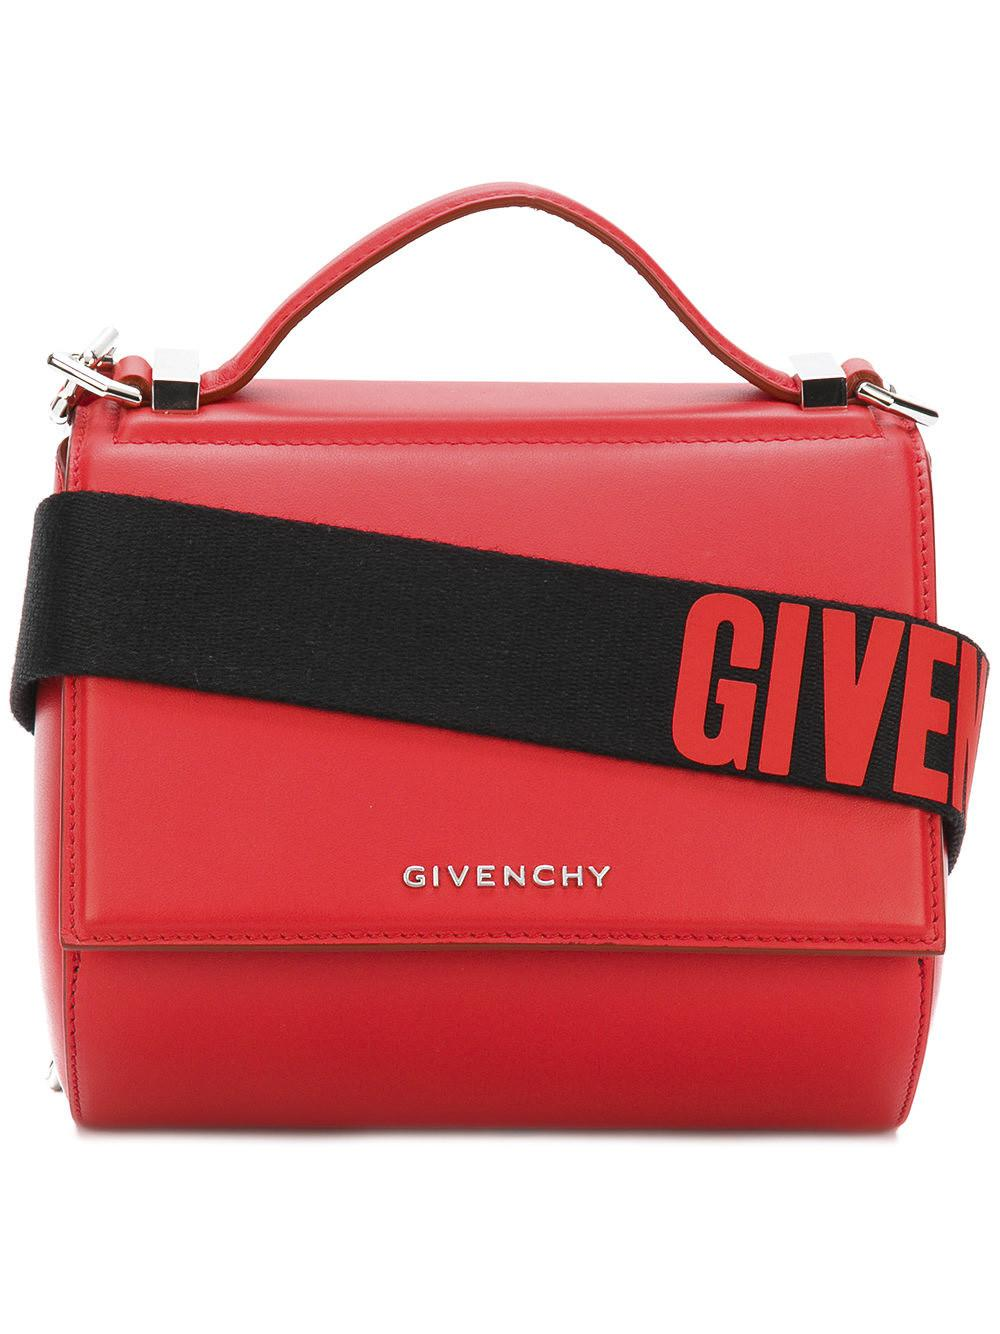 7444385a6ce3 Givenchy Pandora Box Mini Shoulder Bag in Red - Lyst